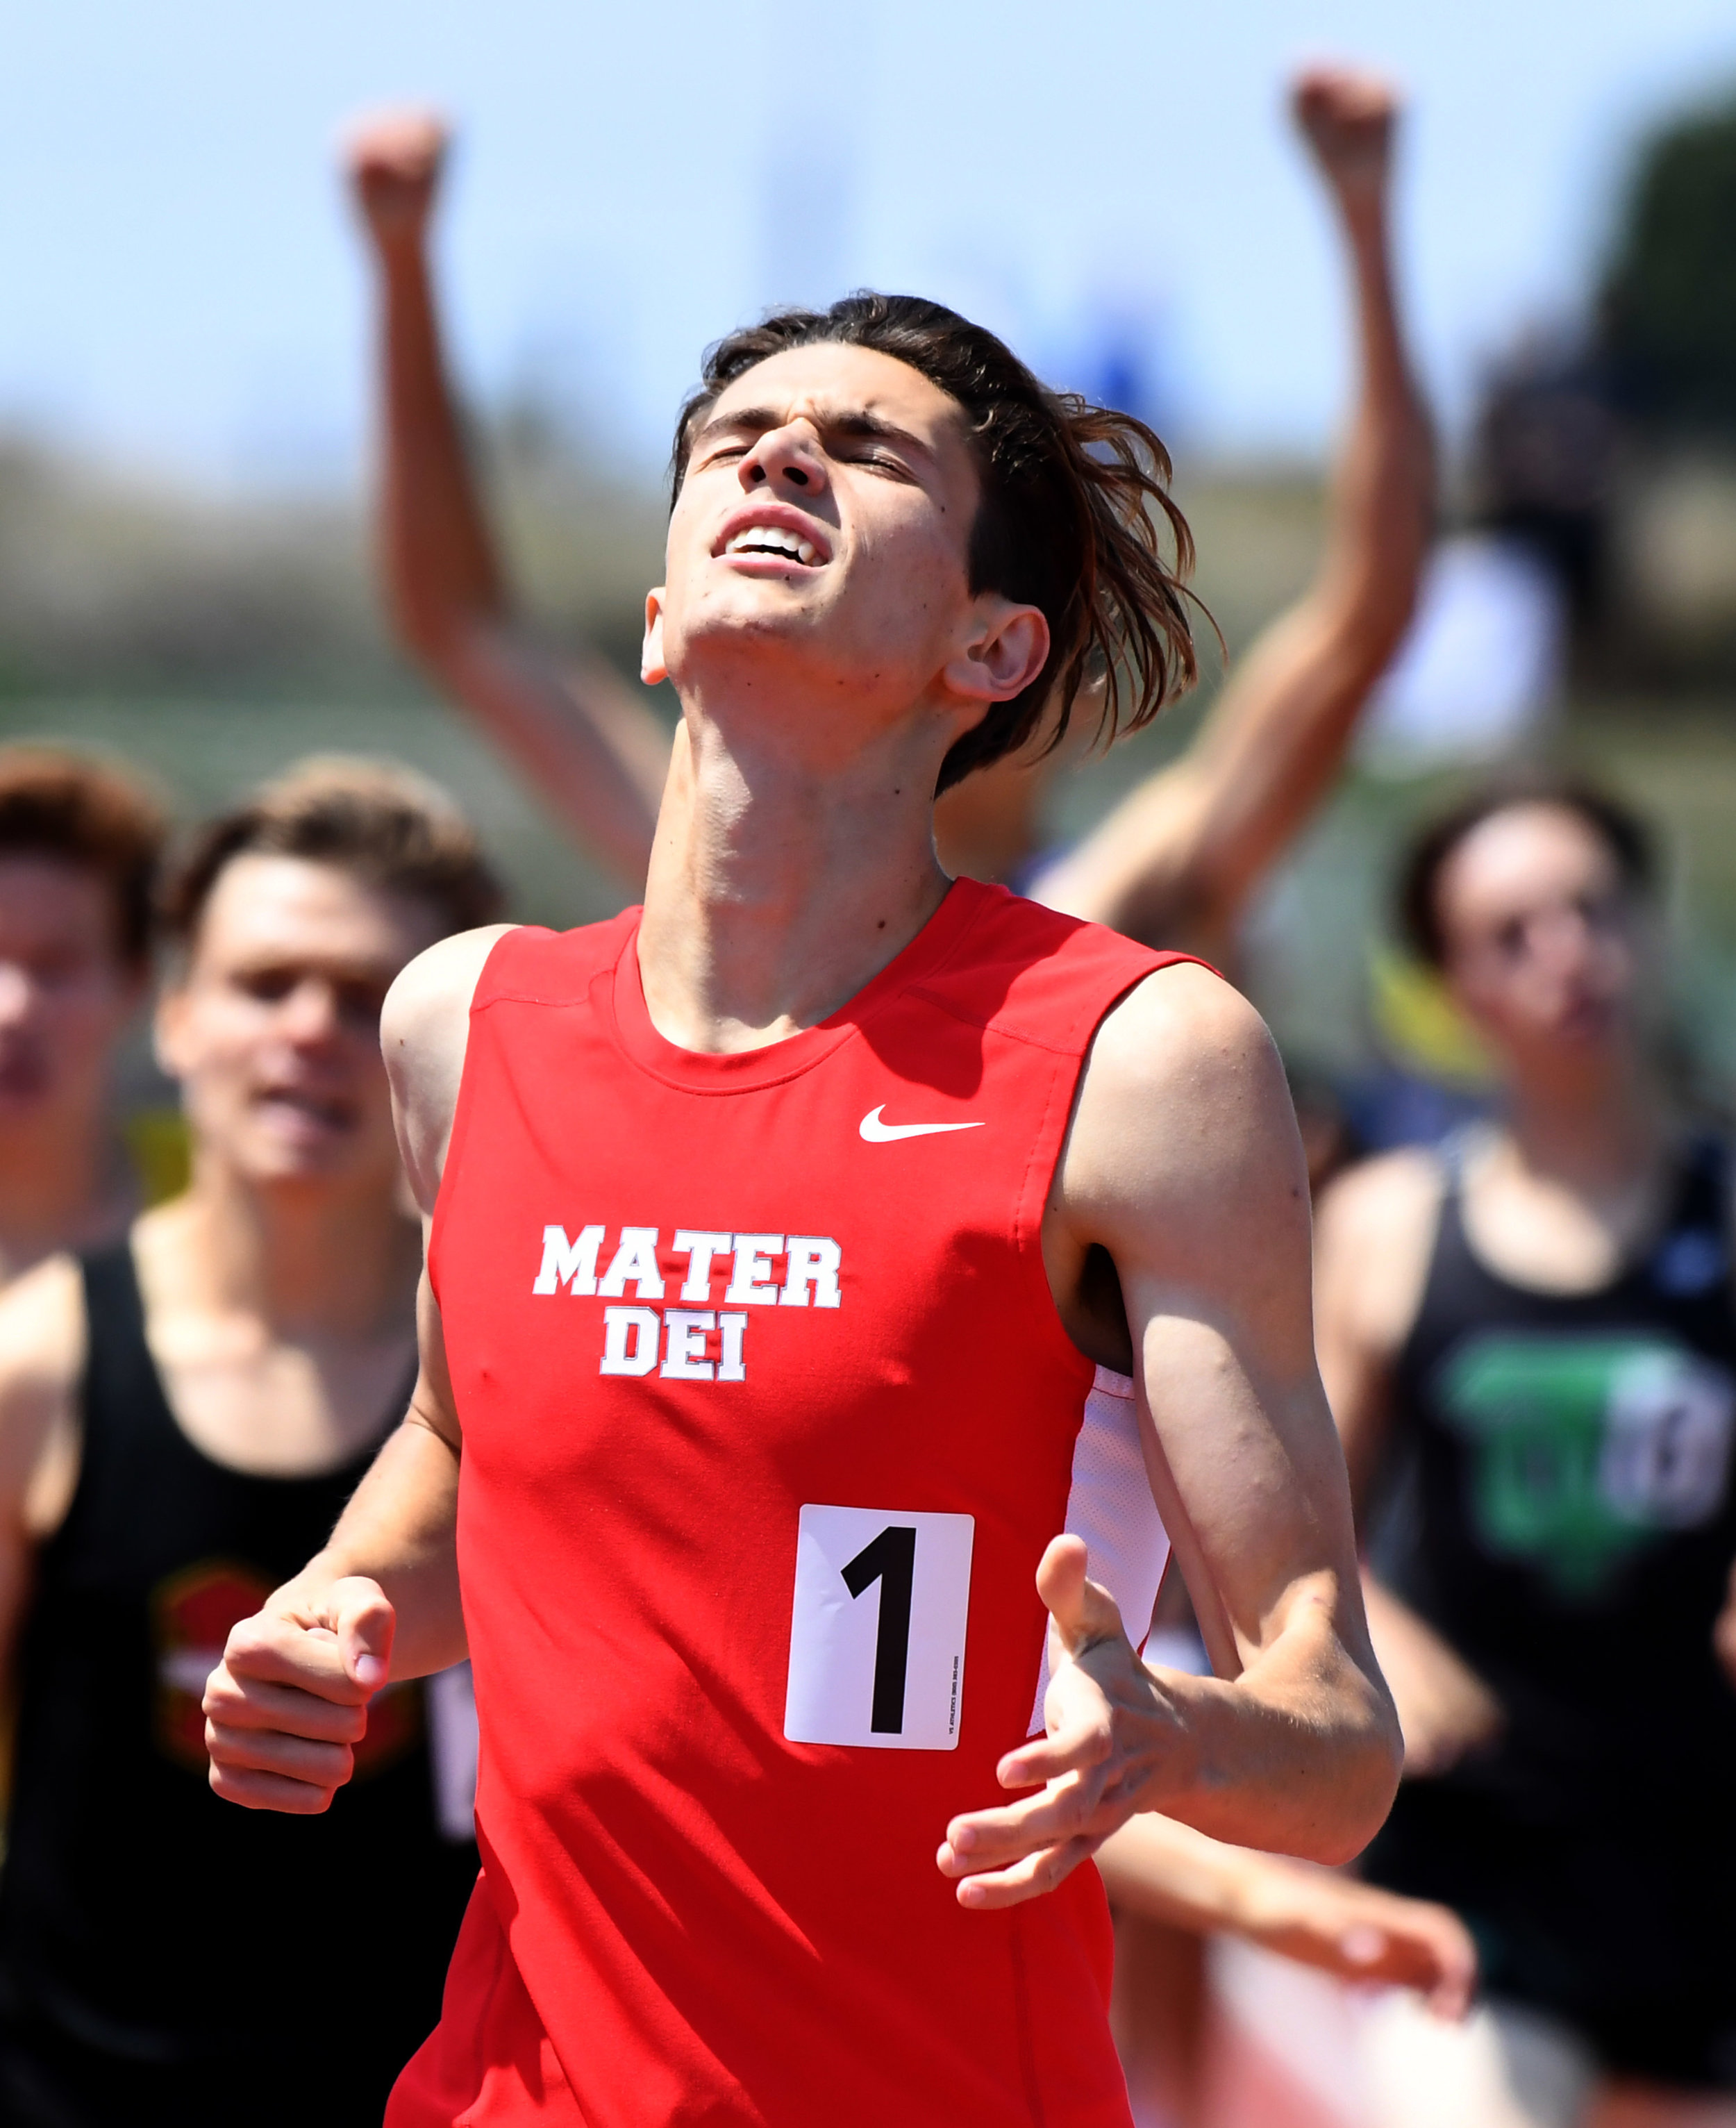 Mater Dei;s Sam VanDorpe wins the 800 meter dash during the CIF-SS Track and Field Masters meet at El Camino College in Torrance, Calif., on Saturday, May 26, 2018.